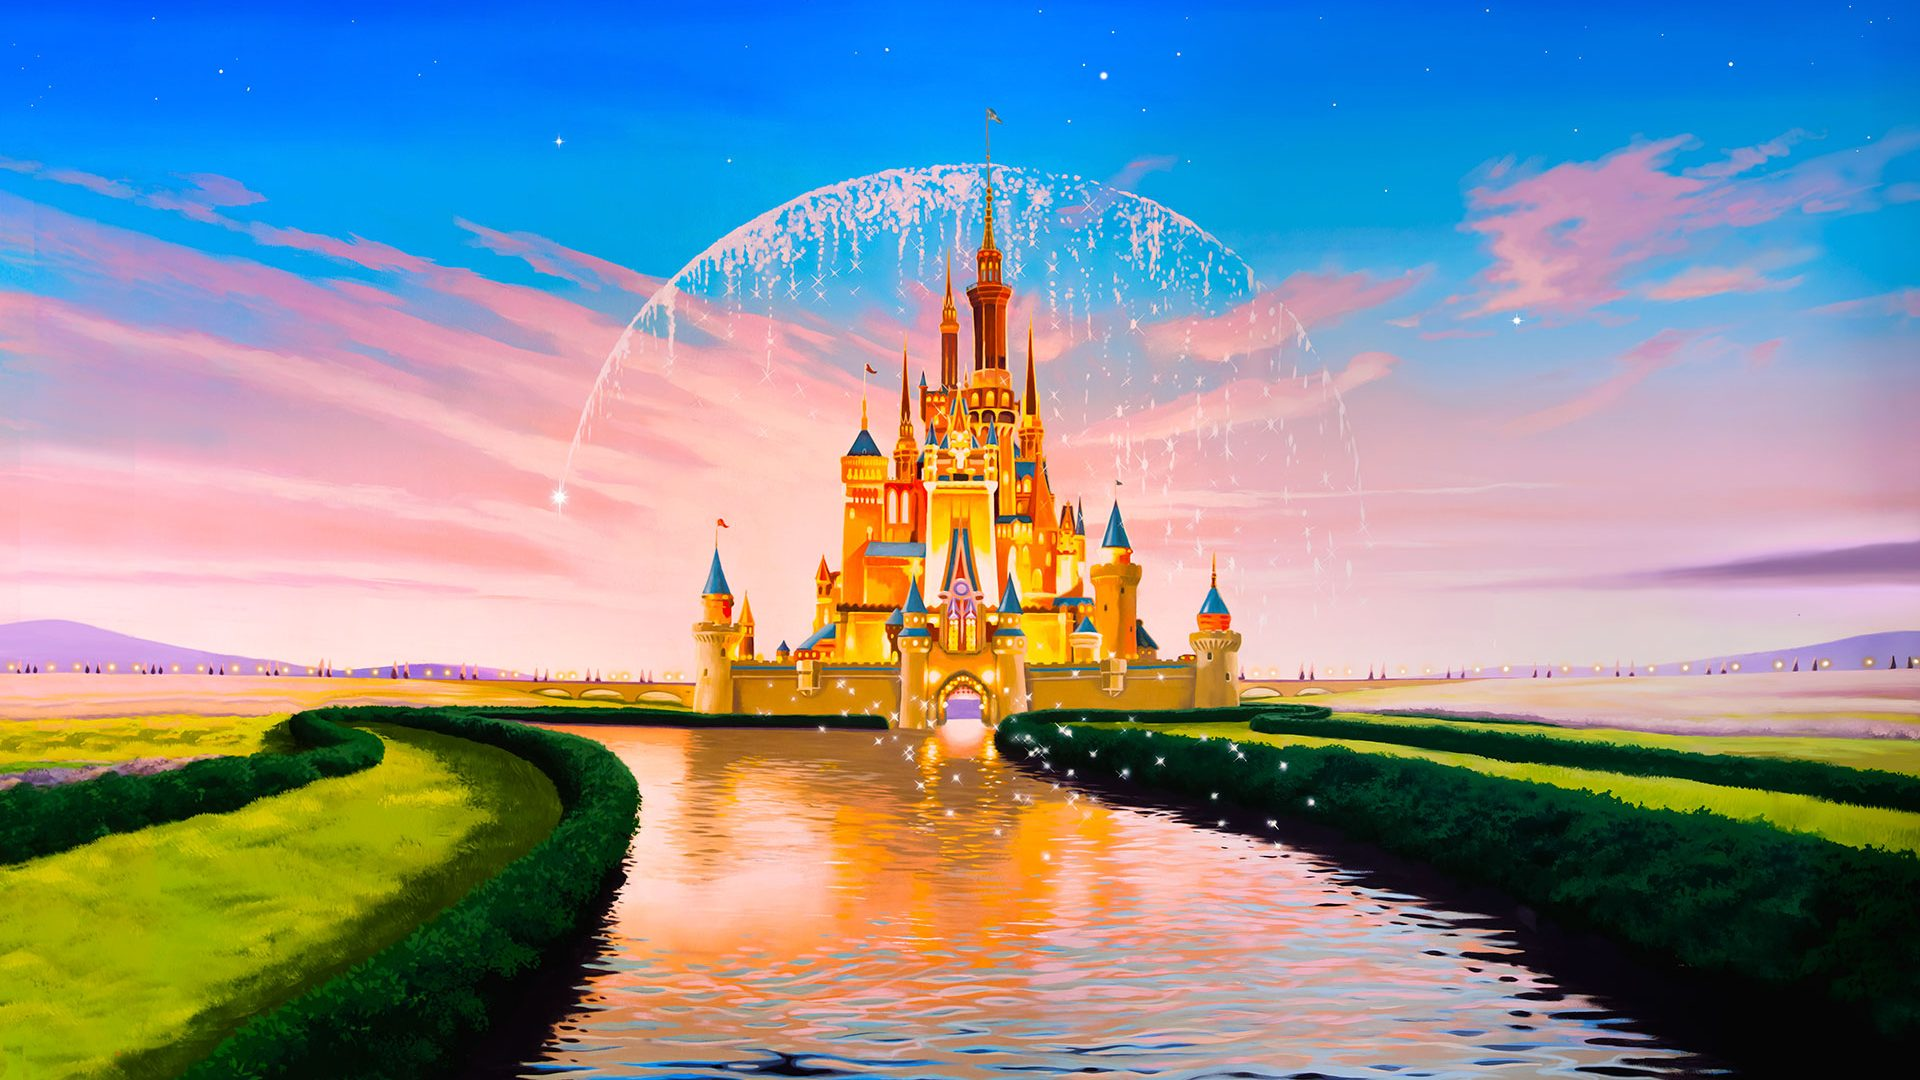 Disney Computer Wallpapers HD 1920x1080